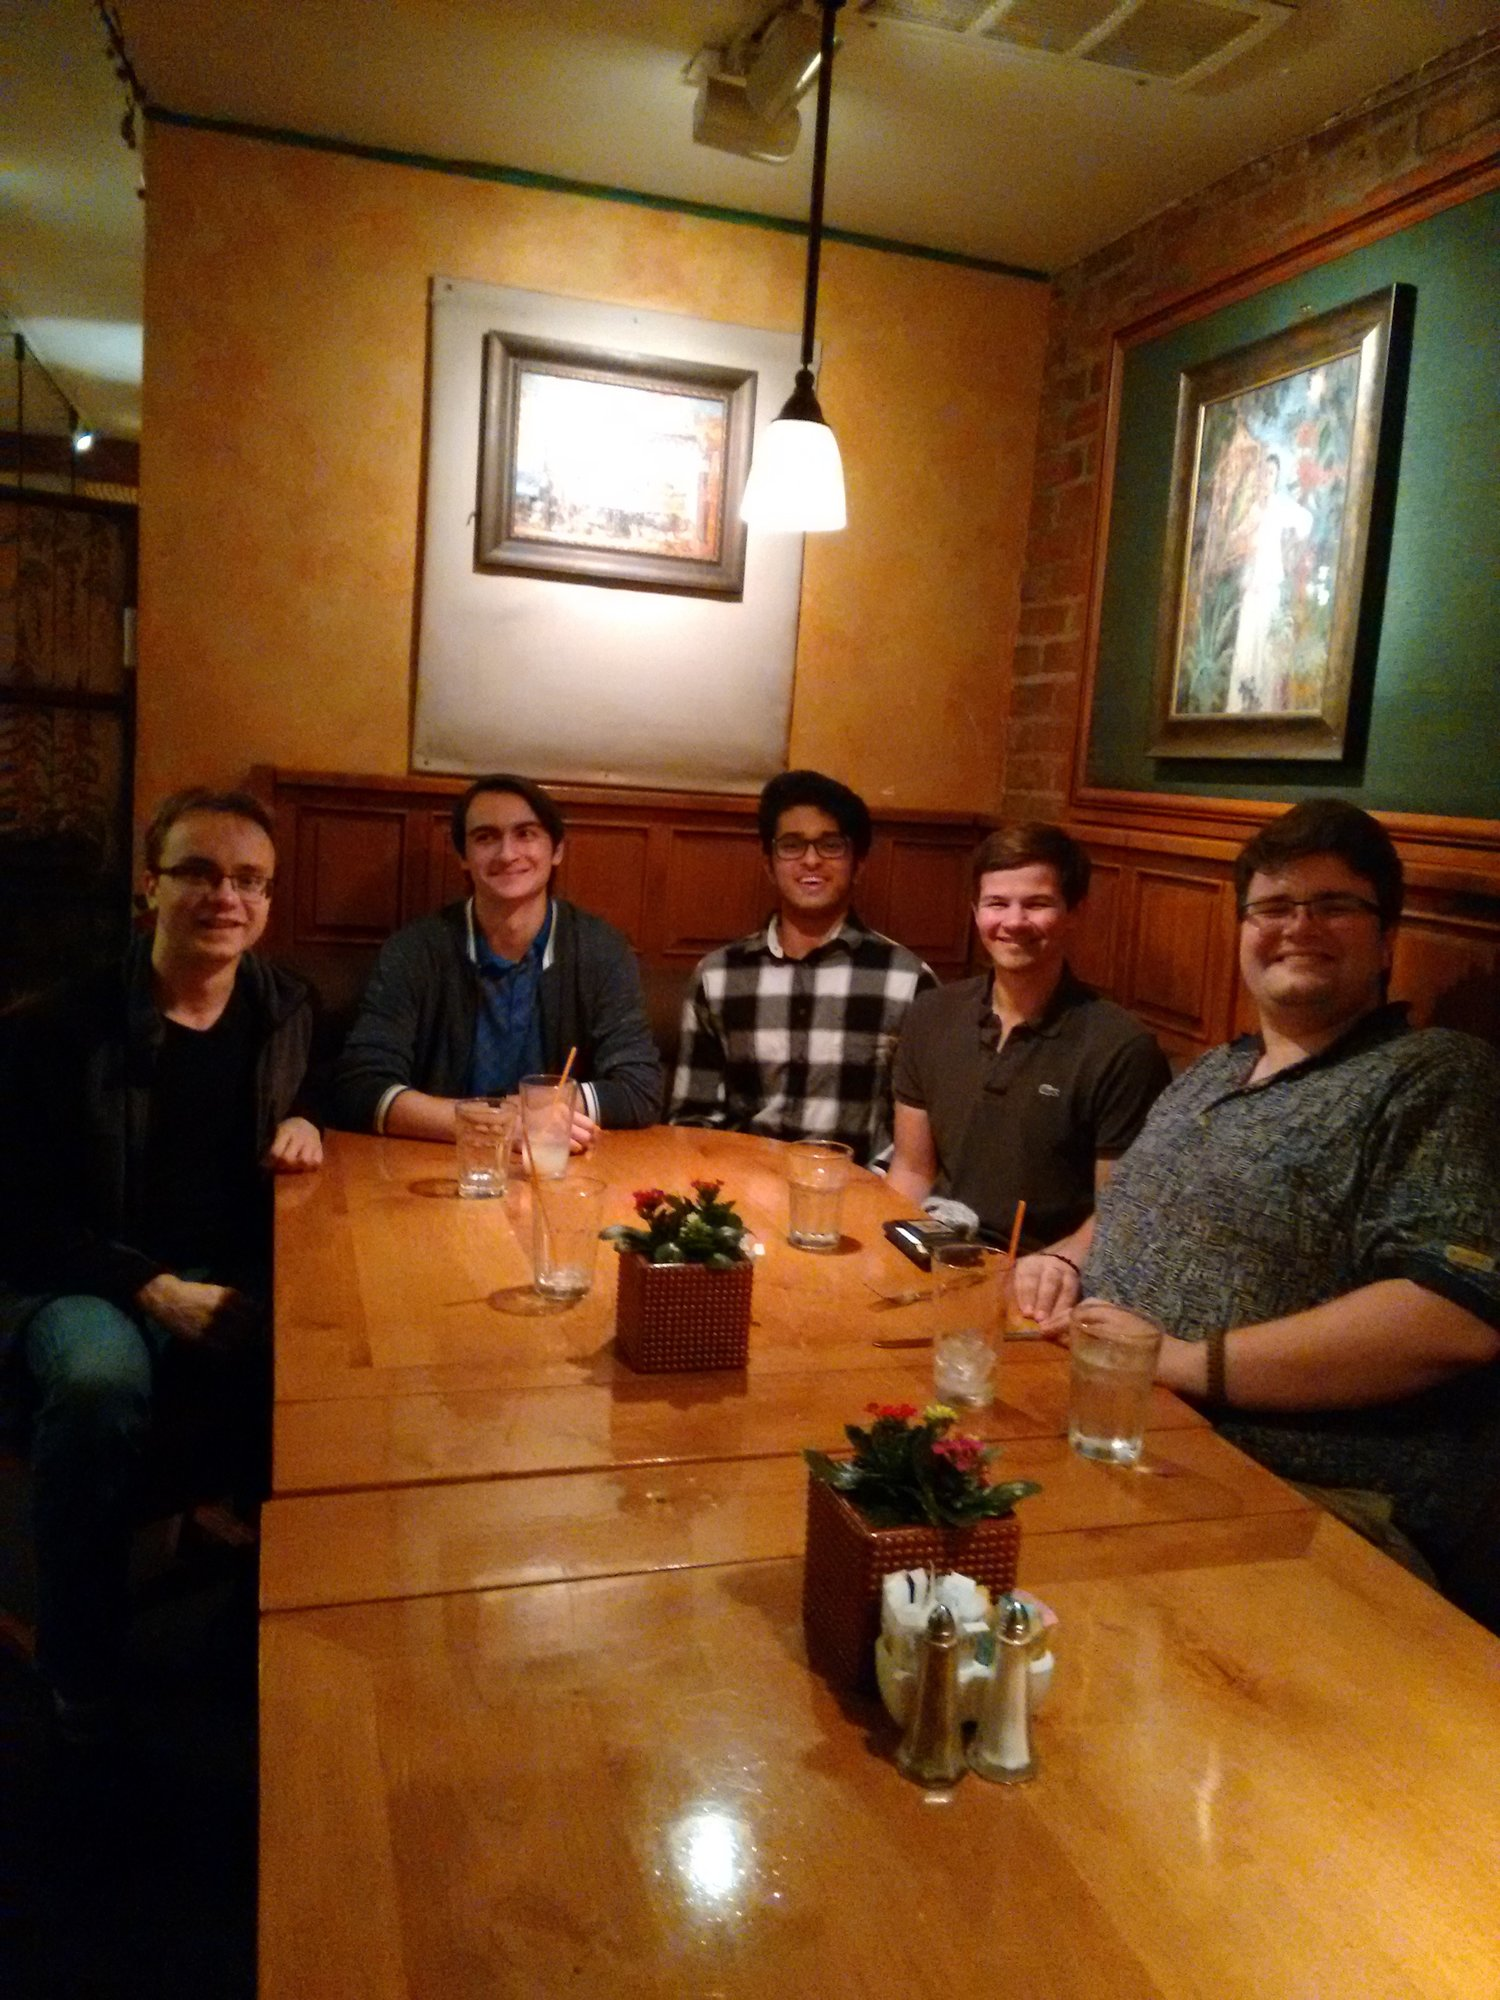 Valère Lambert (BS '14) hosted 4 undergraduate students for Dinner with Techers on Saturday, Feb. 10th.